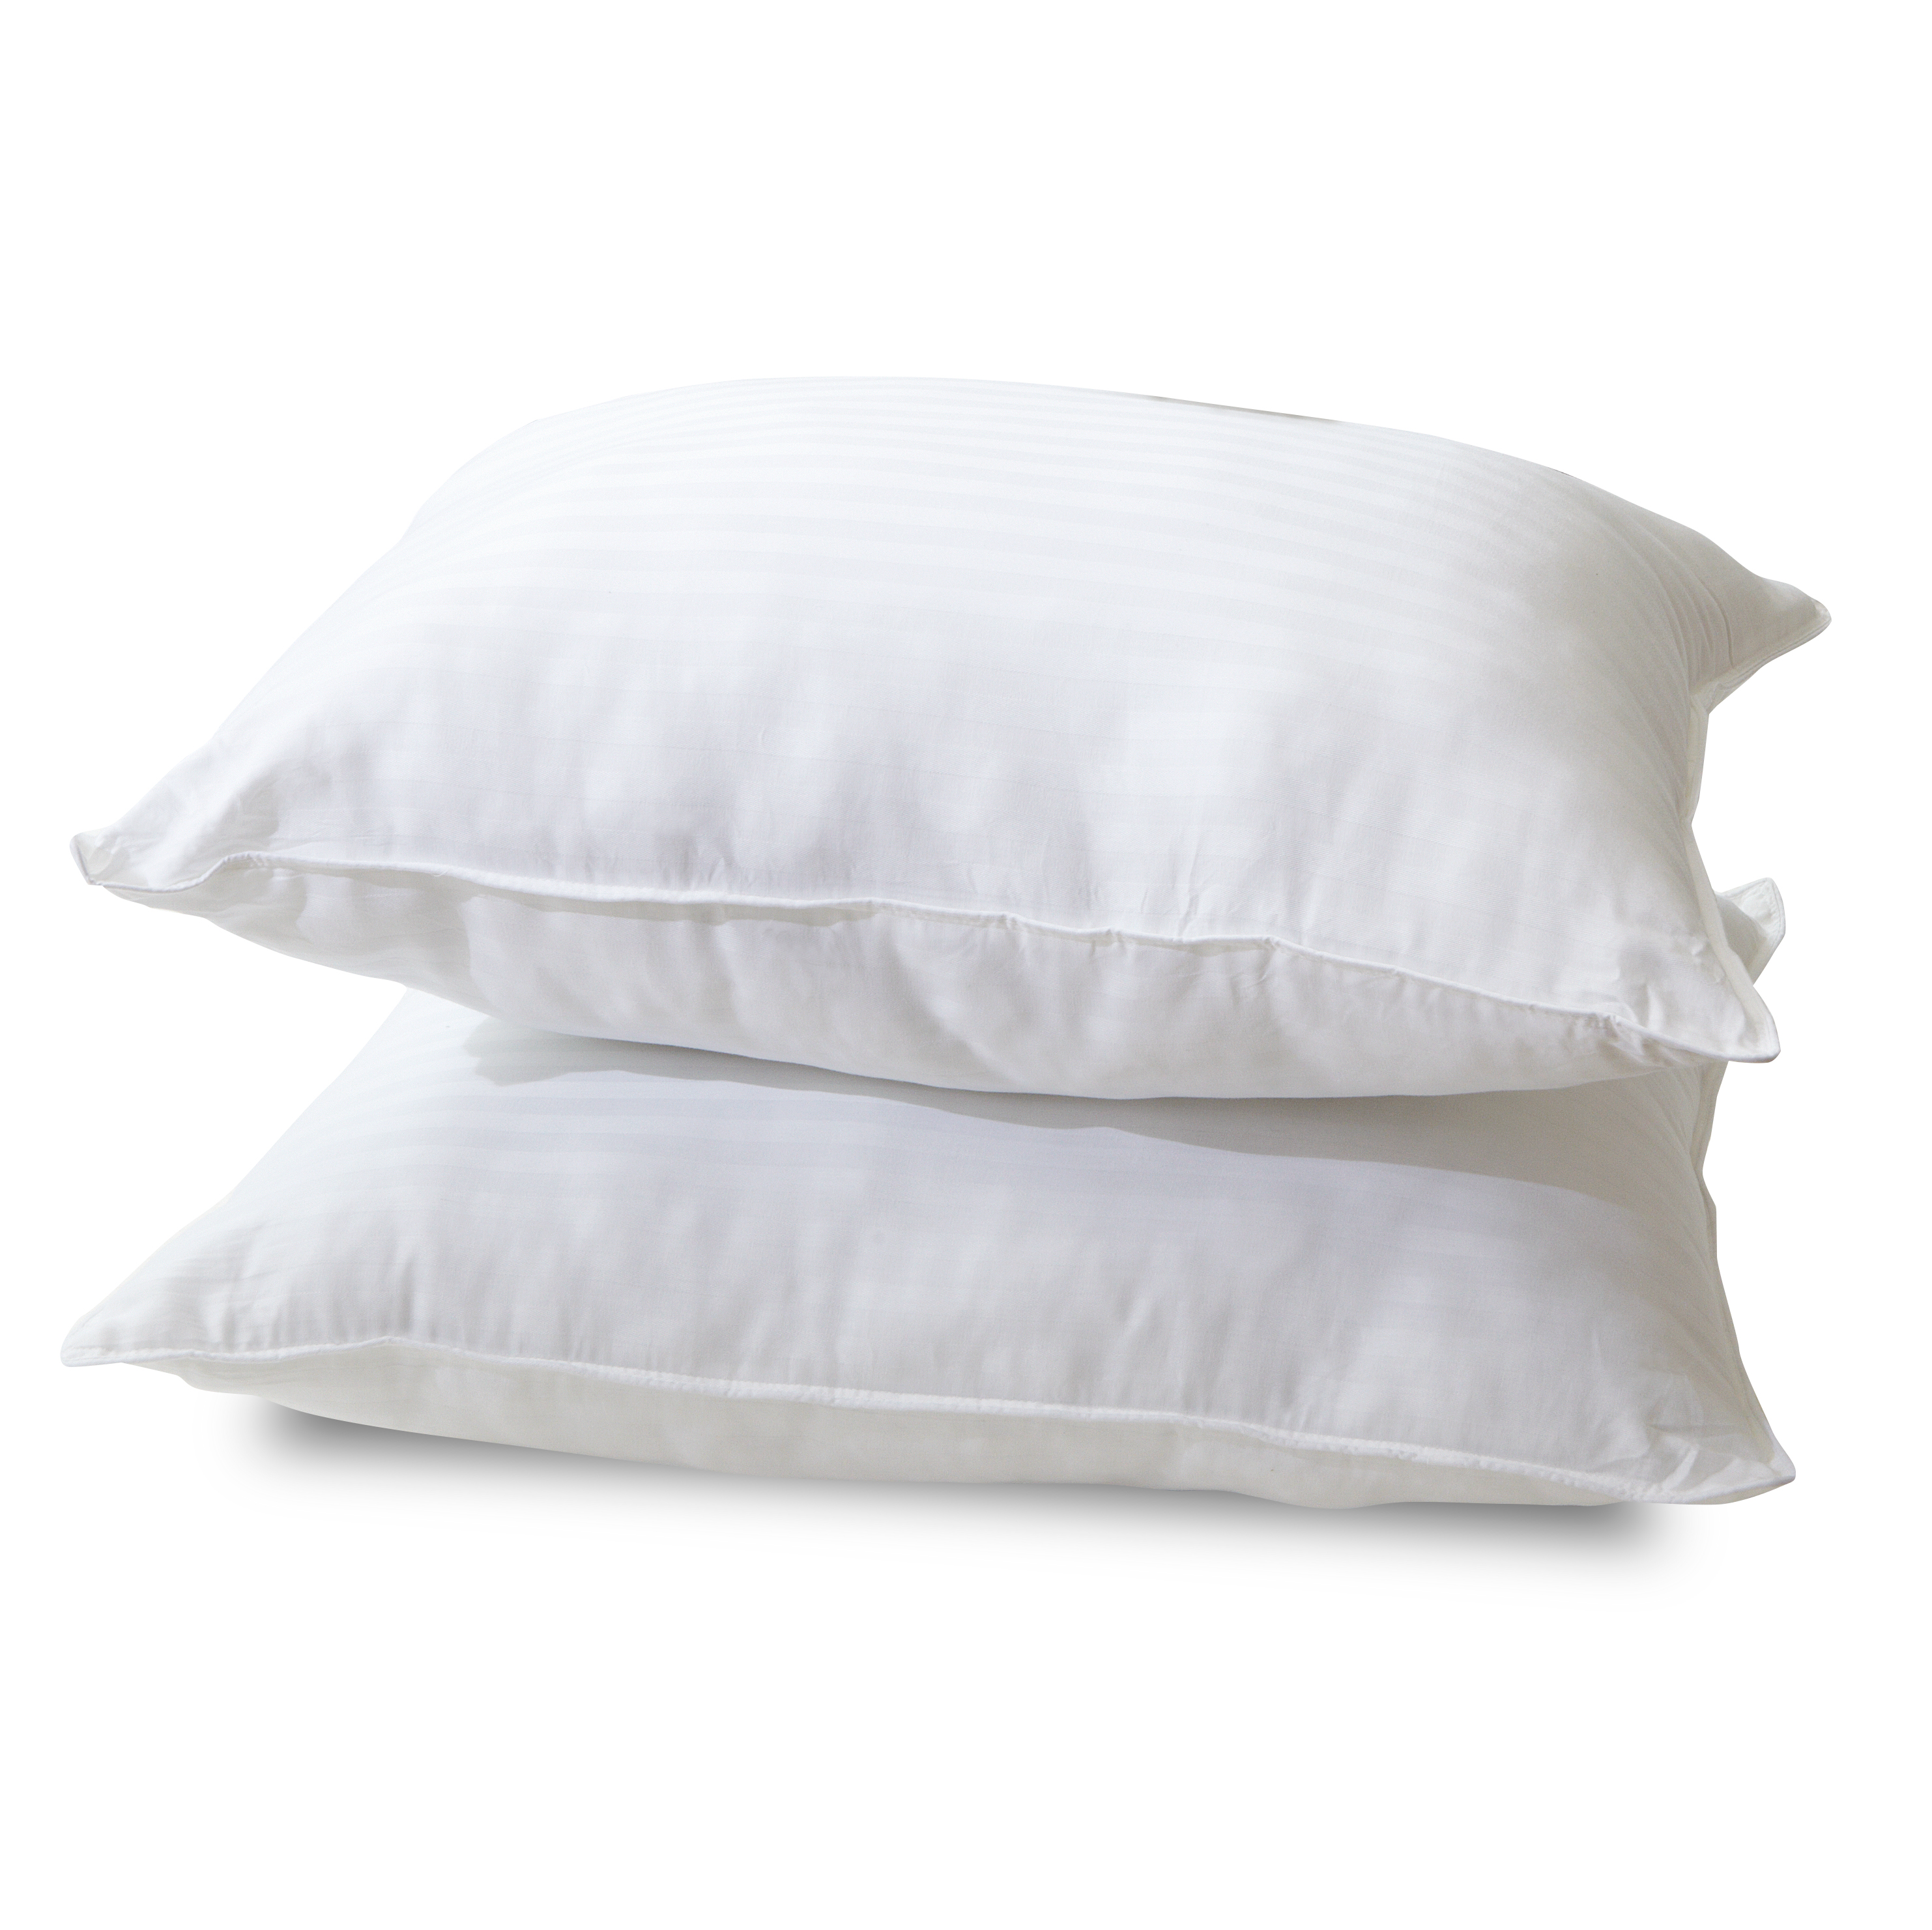 Quiet Sleep Gel Fiber Pillow